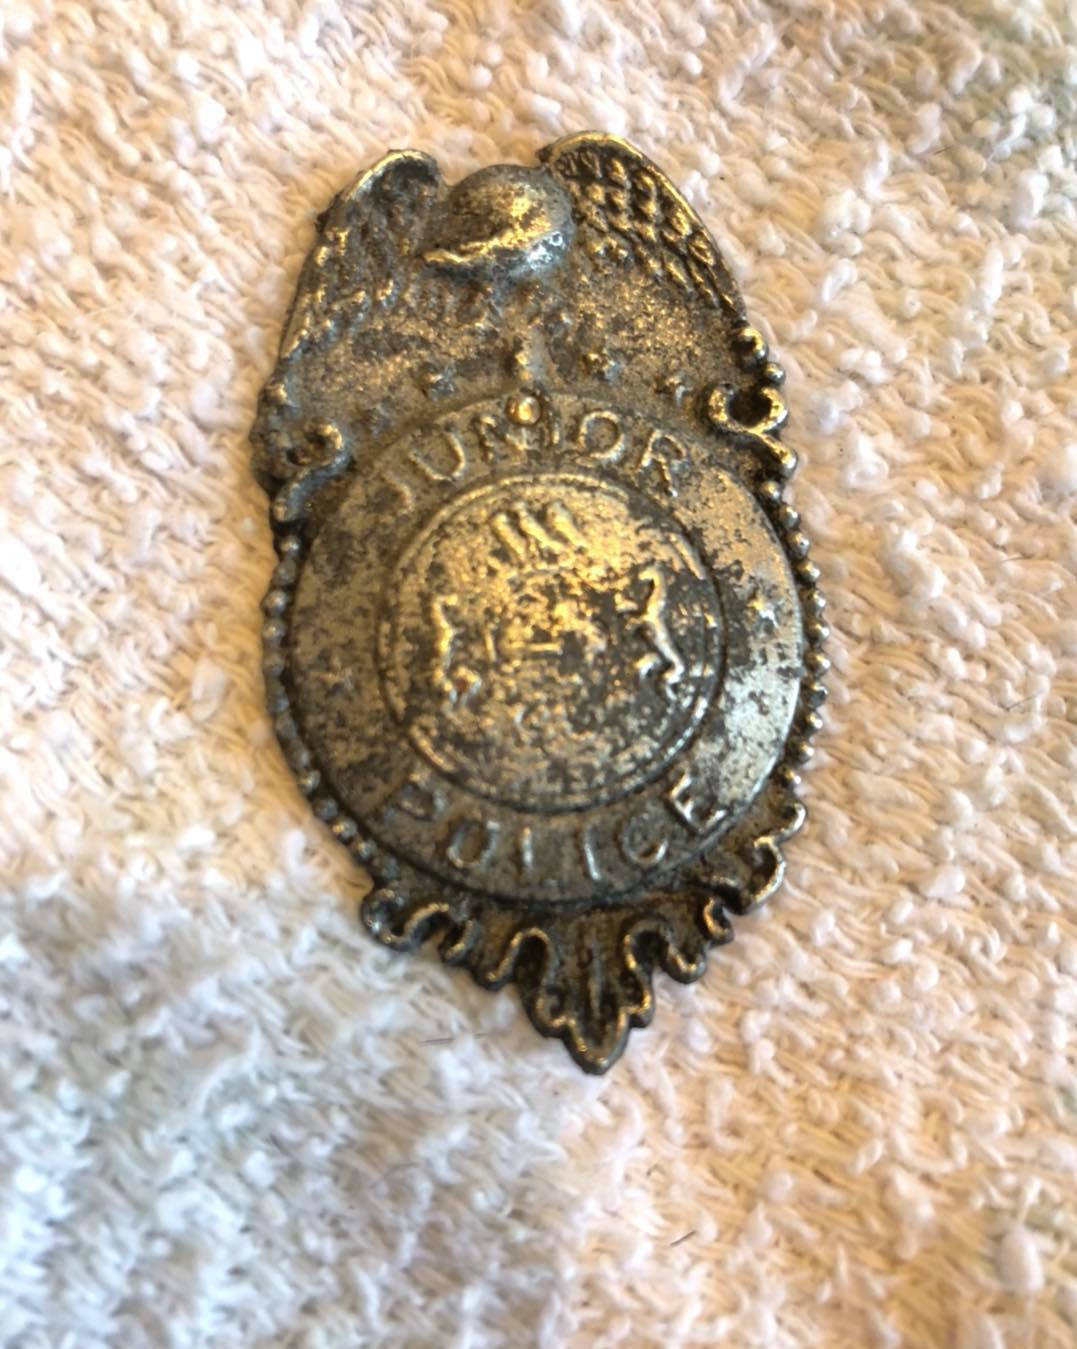 In the excavation of the parking lot Michael found a cool old toy badge. It says